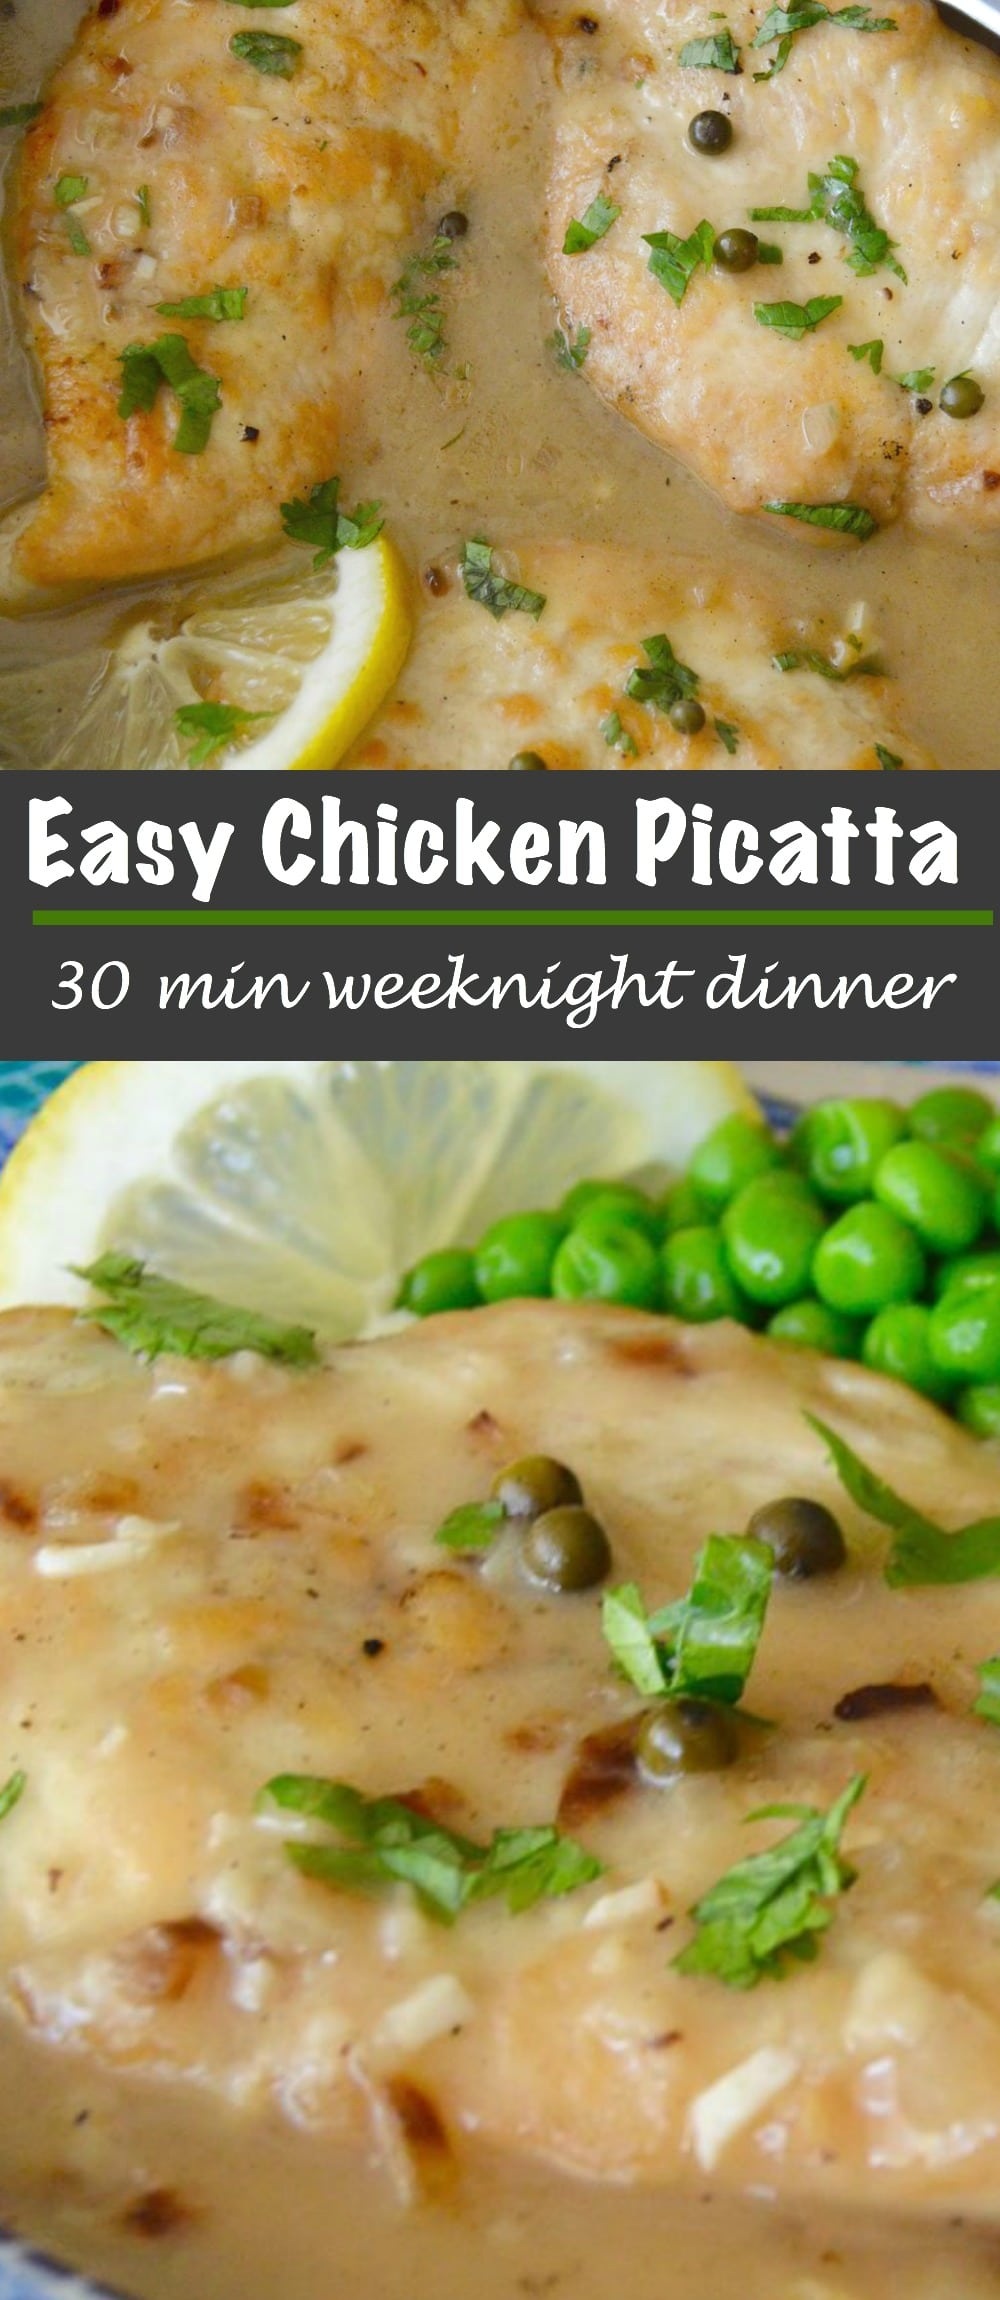 Easy Healthy Comfort Food: Chicken Picatta, an easy weeknight dinner recipe that you can make in less than 30 minutes! Perfect for weeknight entertaining too!